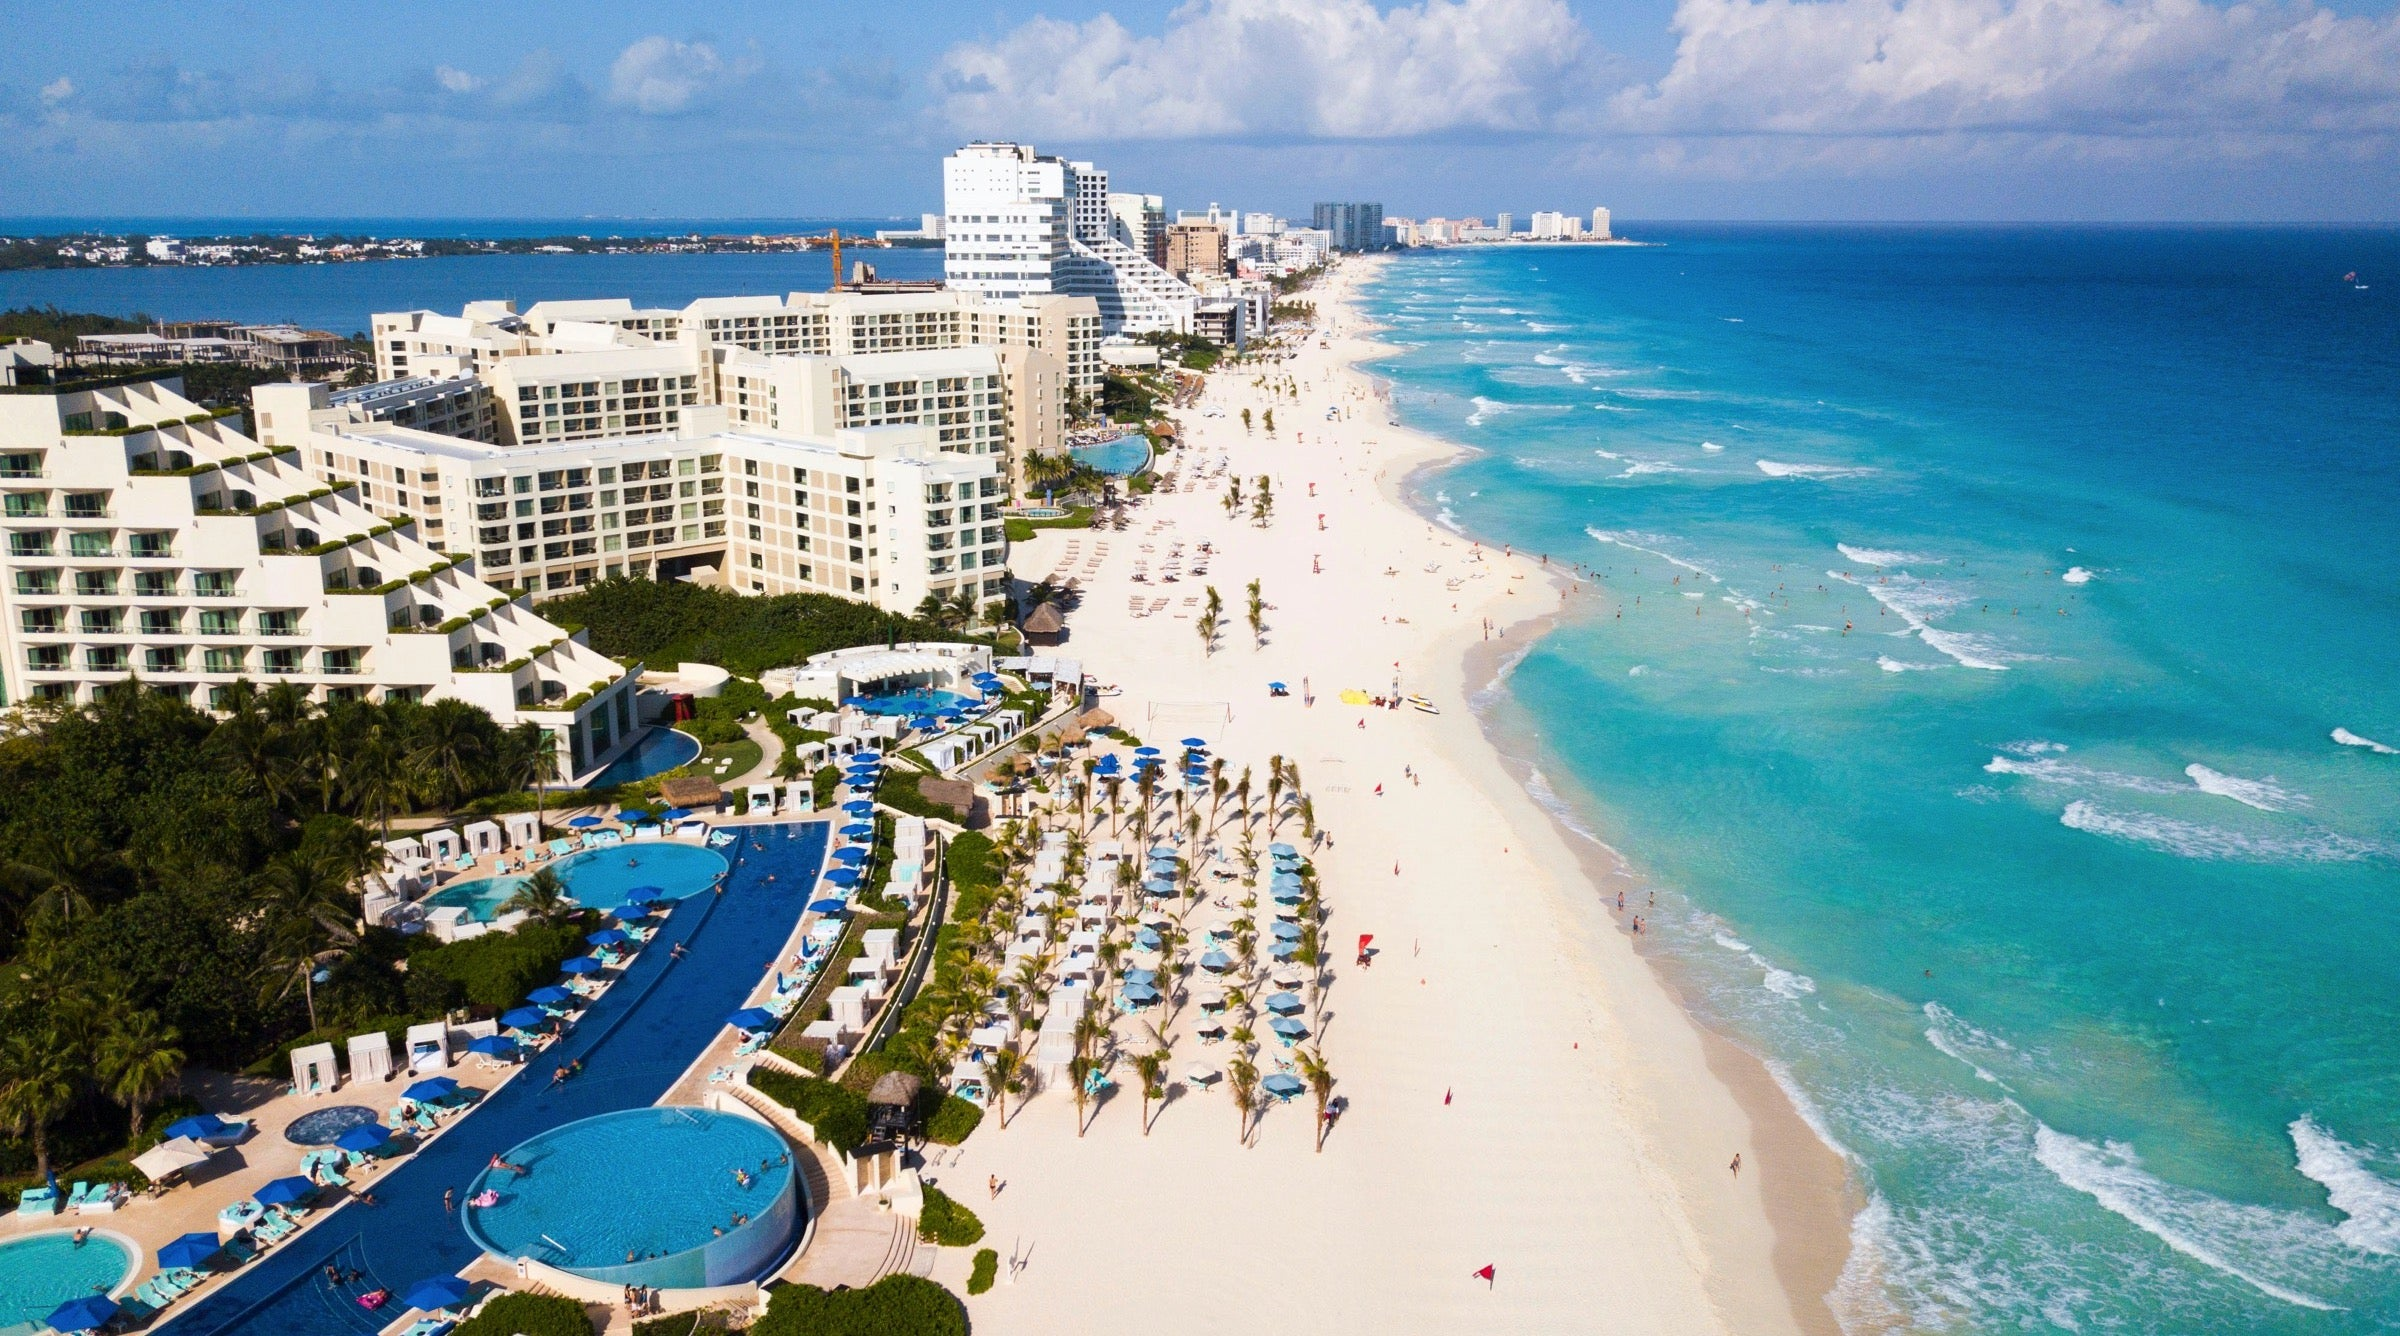 Deal alert: Flights to Mexico starting under $200 in economy, under $300 in premium economy - The Points Guy